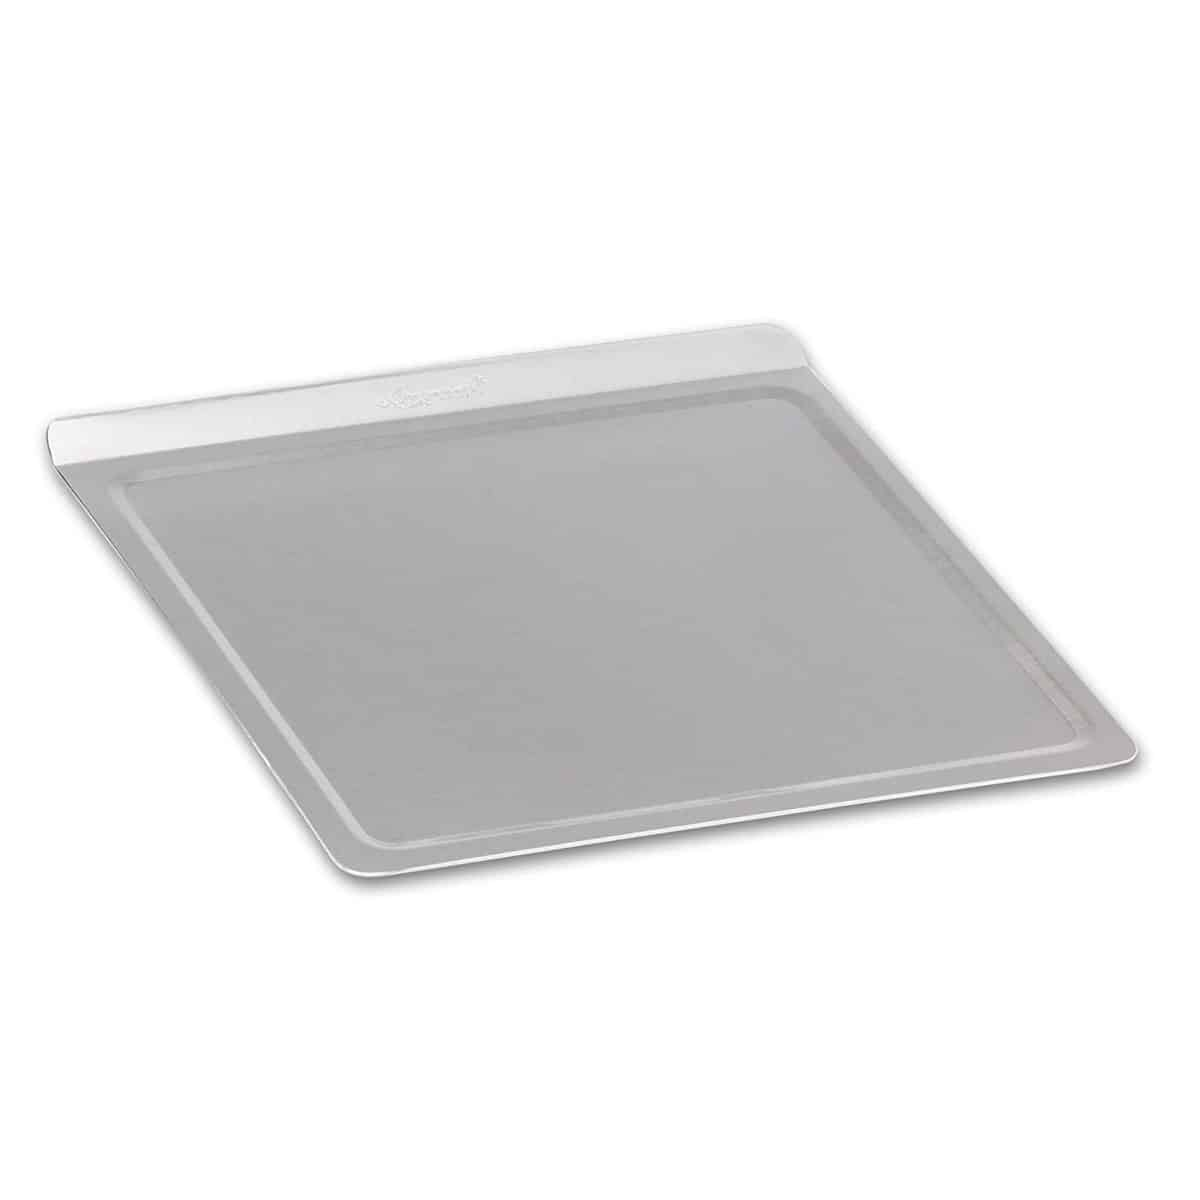 360 Cookie Sheet